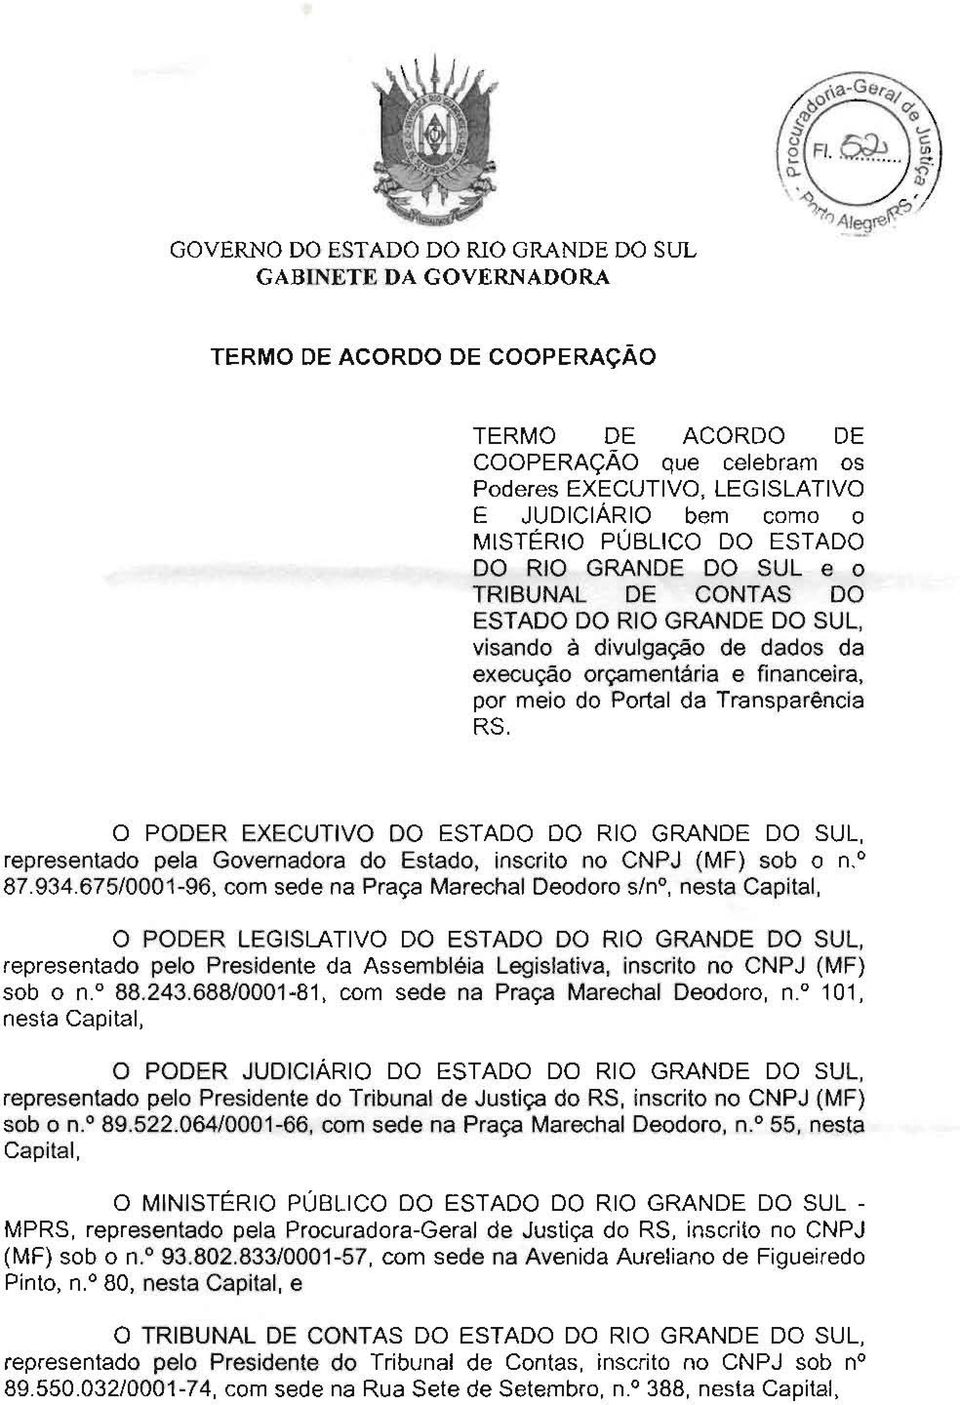 Transparencia RS. o PODER EXECUTIVO DO ESTADO DO RIO GRANDE DO SUL, representado pela Governadora do Estado, inscrito no CNPJ (MF) sob a n,o 87.934.